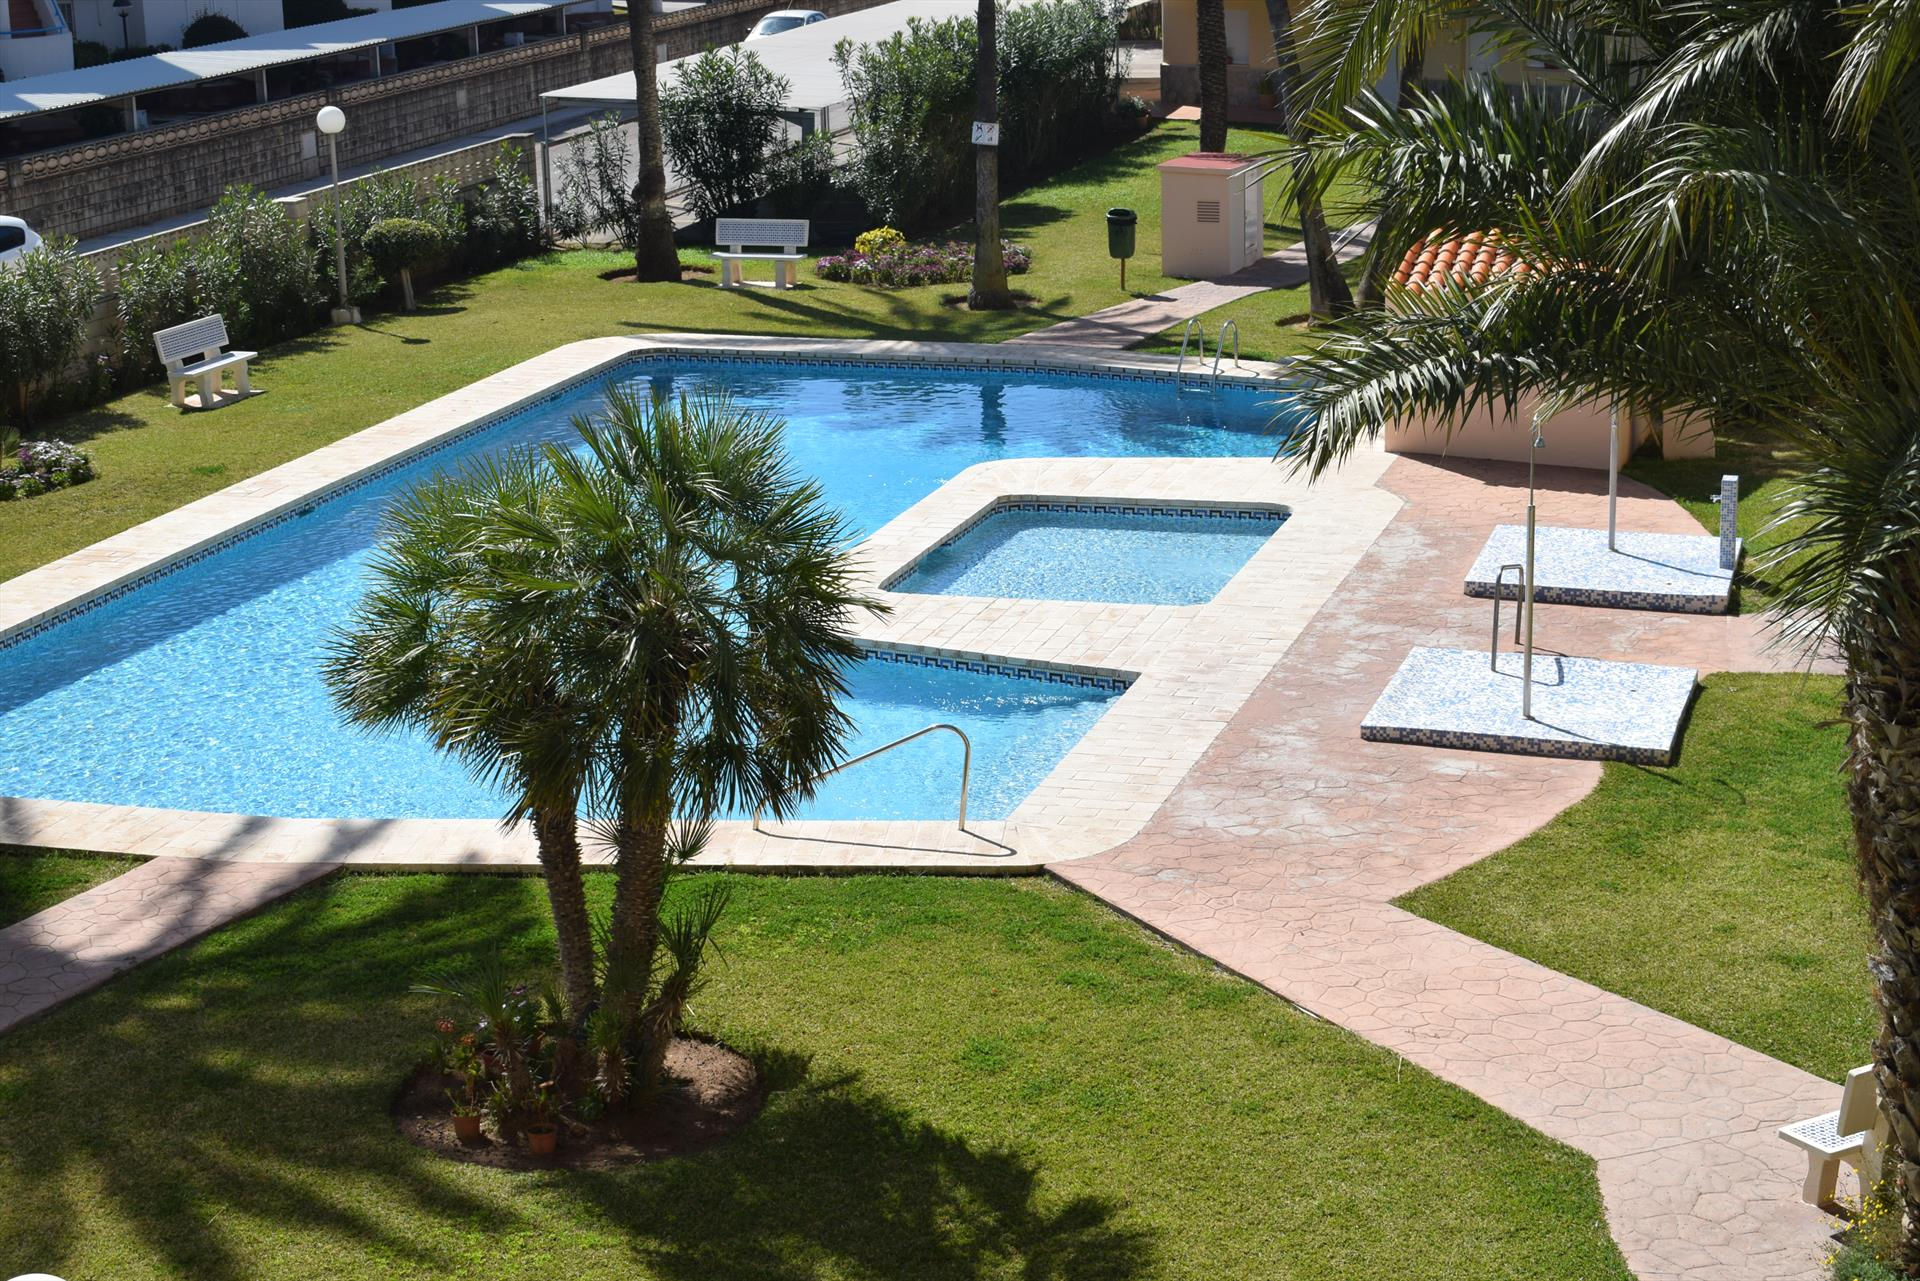 Los Angeles Les Marines AP3209, Large and comfortable apartment in Denia, on the Costa Blanca, Spain  with communal pool for 7 persons.....